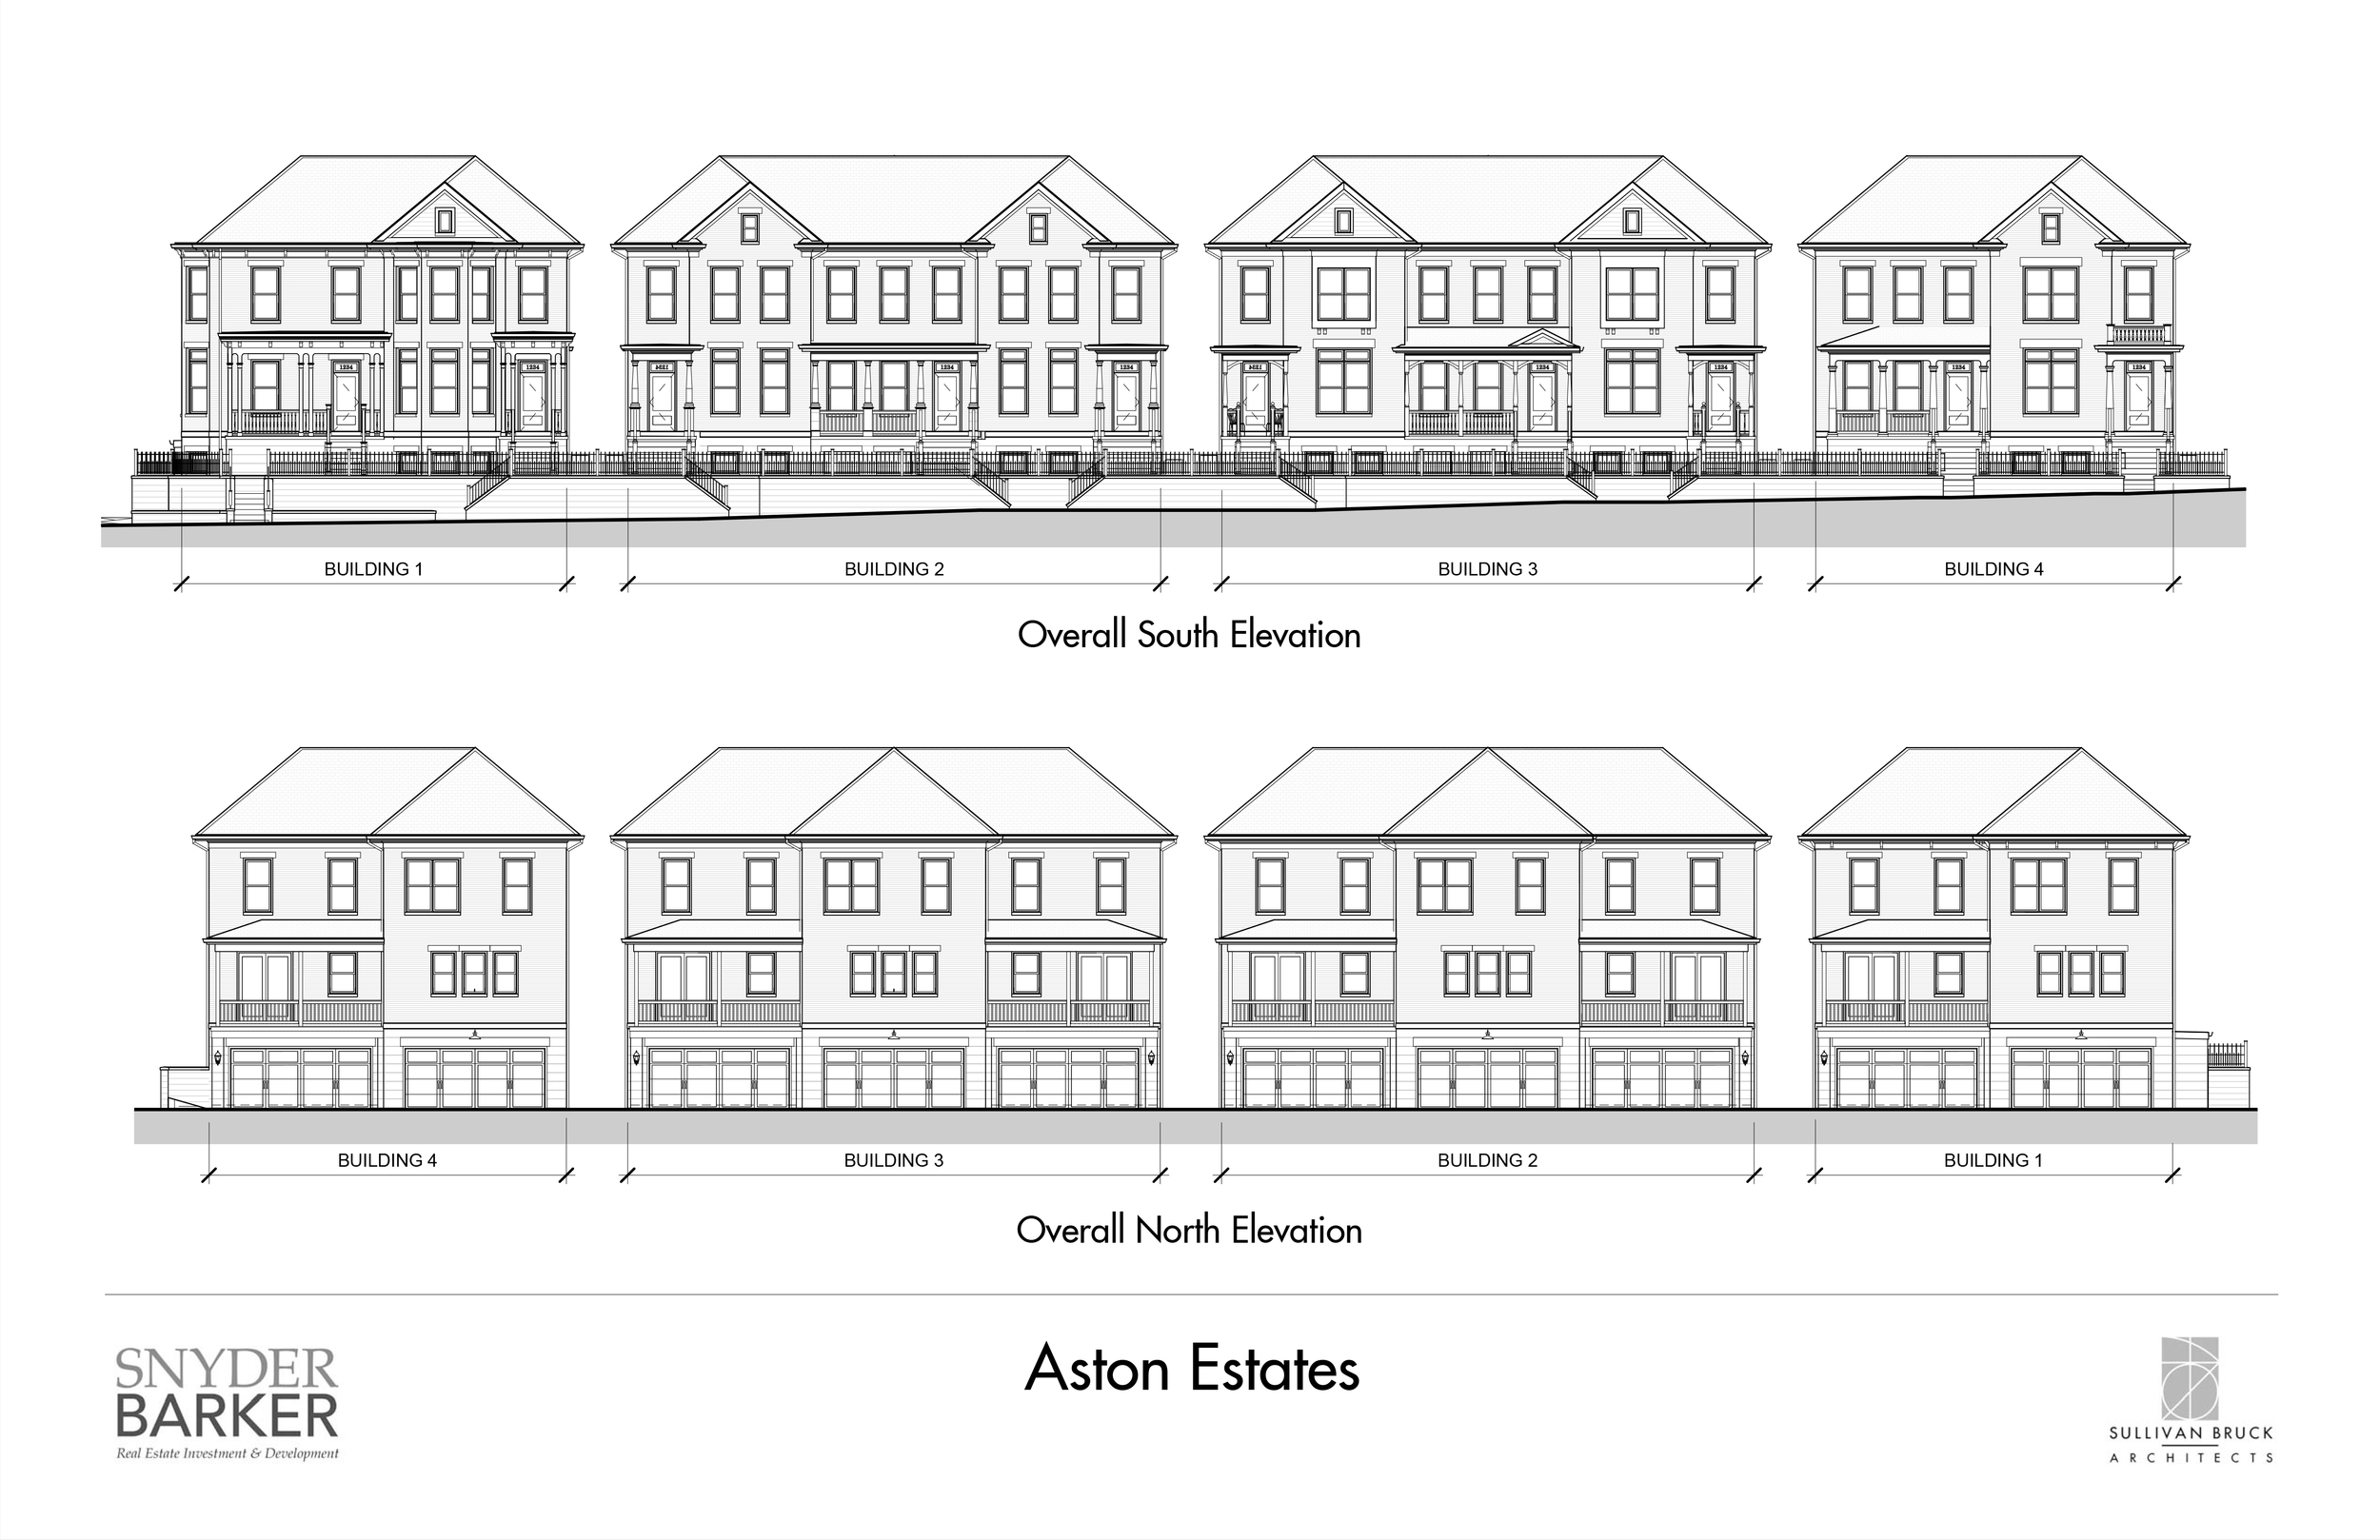 Aston_Estates_Main_2.jpg